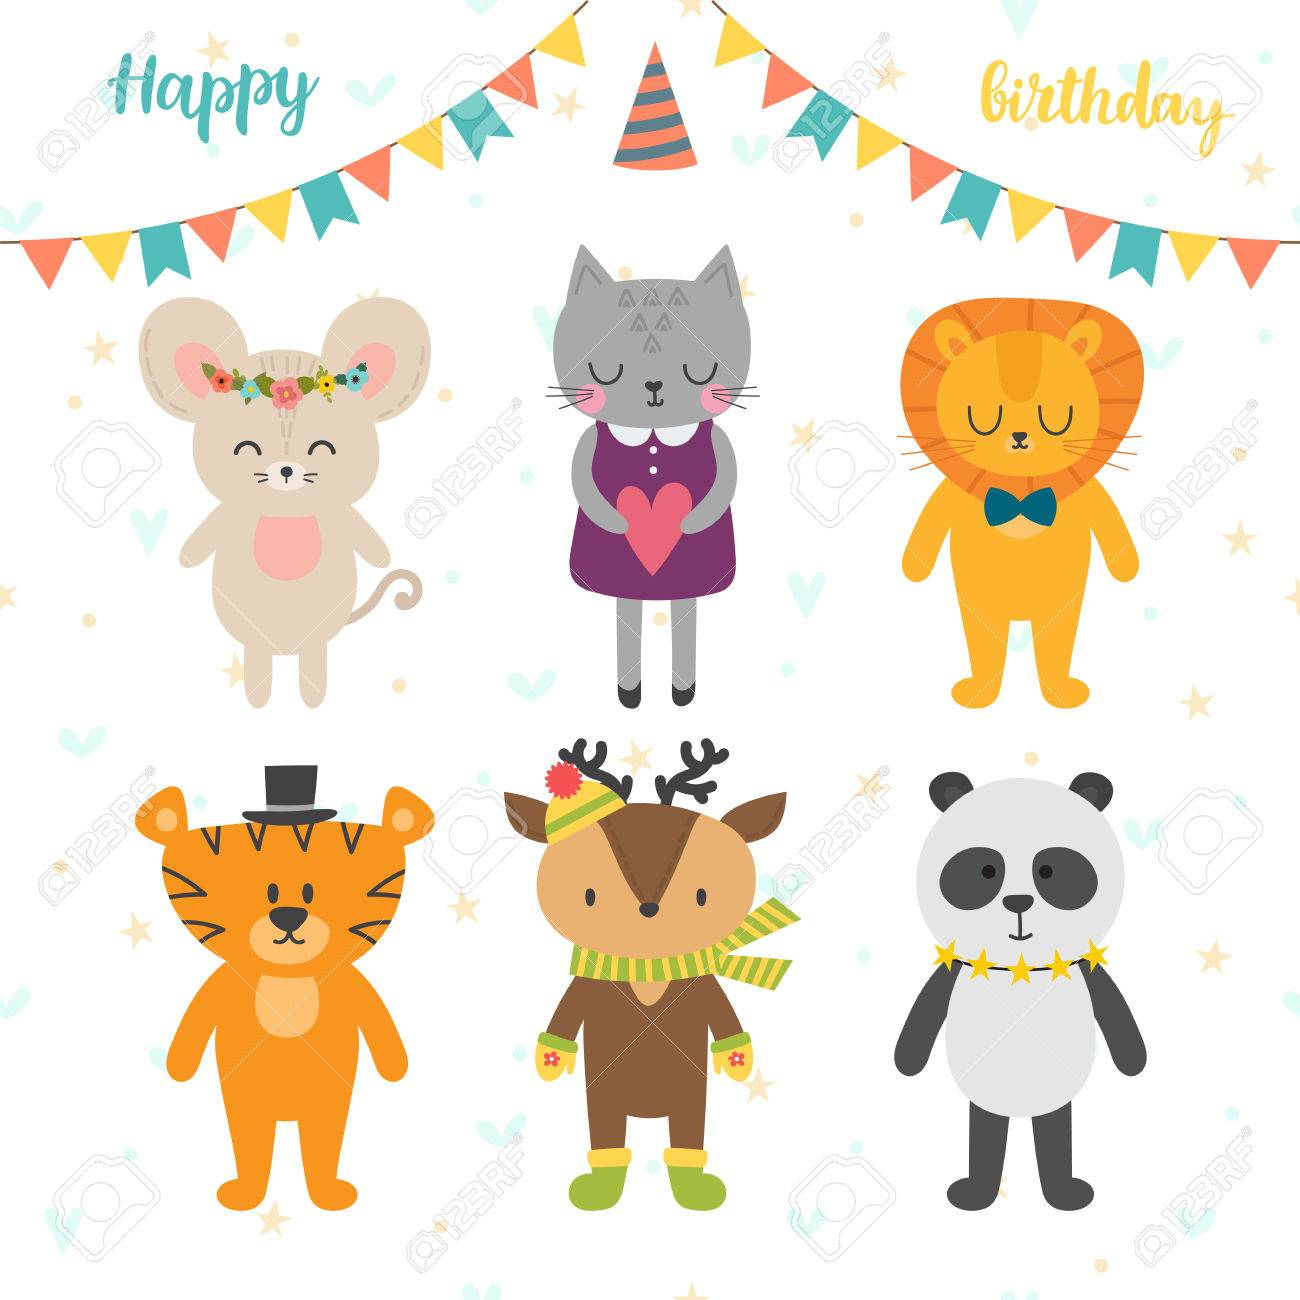 Happy birthday card with cute cartoon animals vector illustration happy birthday card with cute cartoon animals vector illustration 82308529 voltagebd Gallery